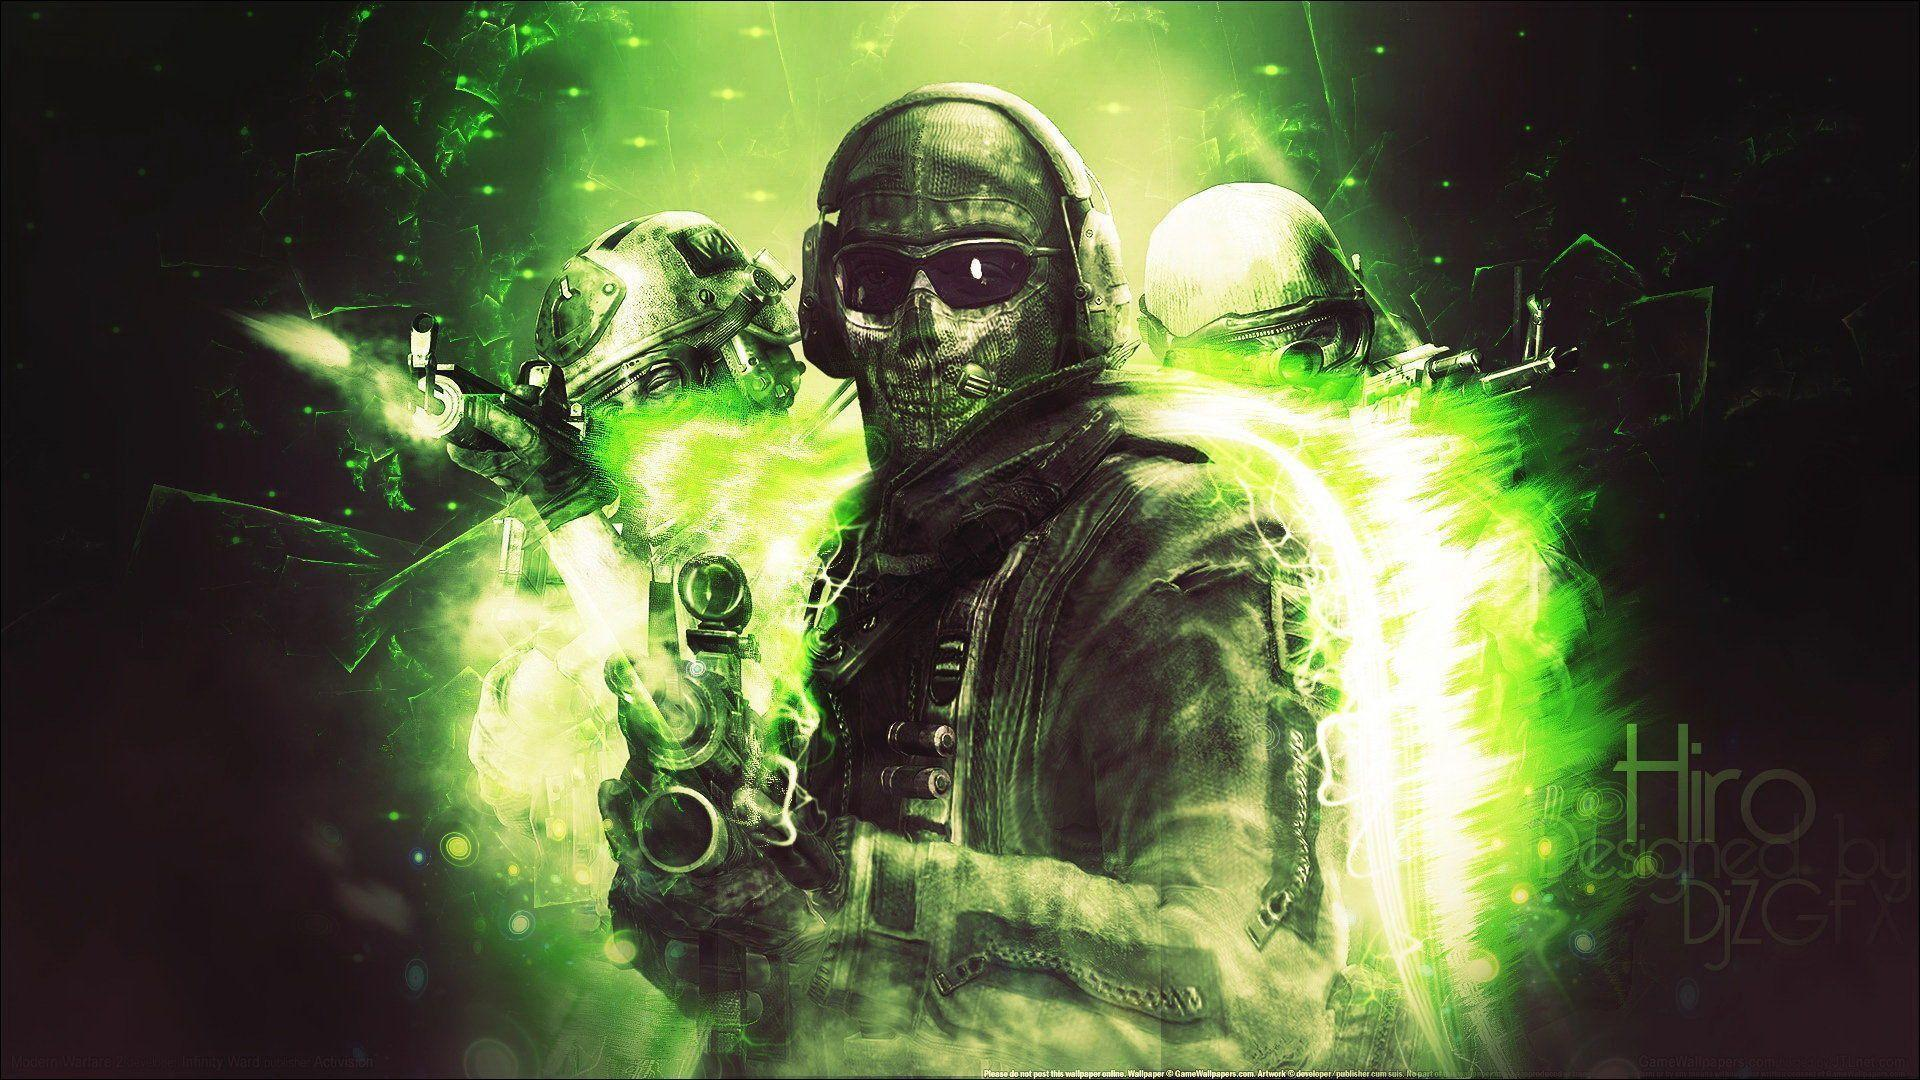 Call of duty ghosts wallpapers wallpaper cave for Cool modern wallpapers